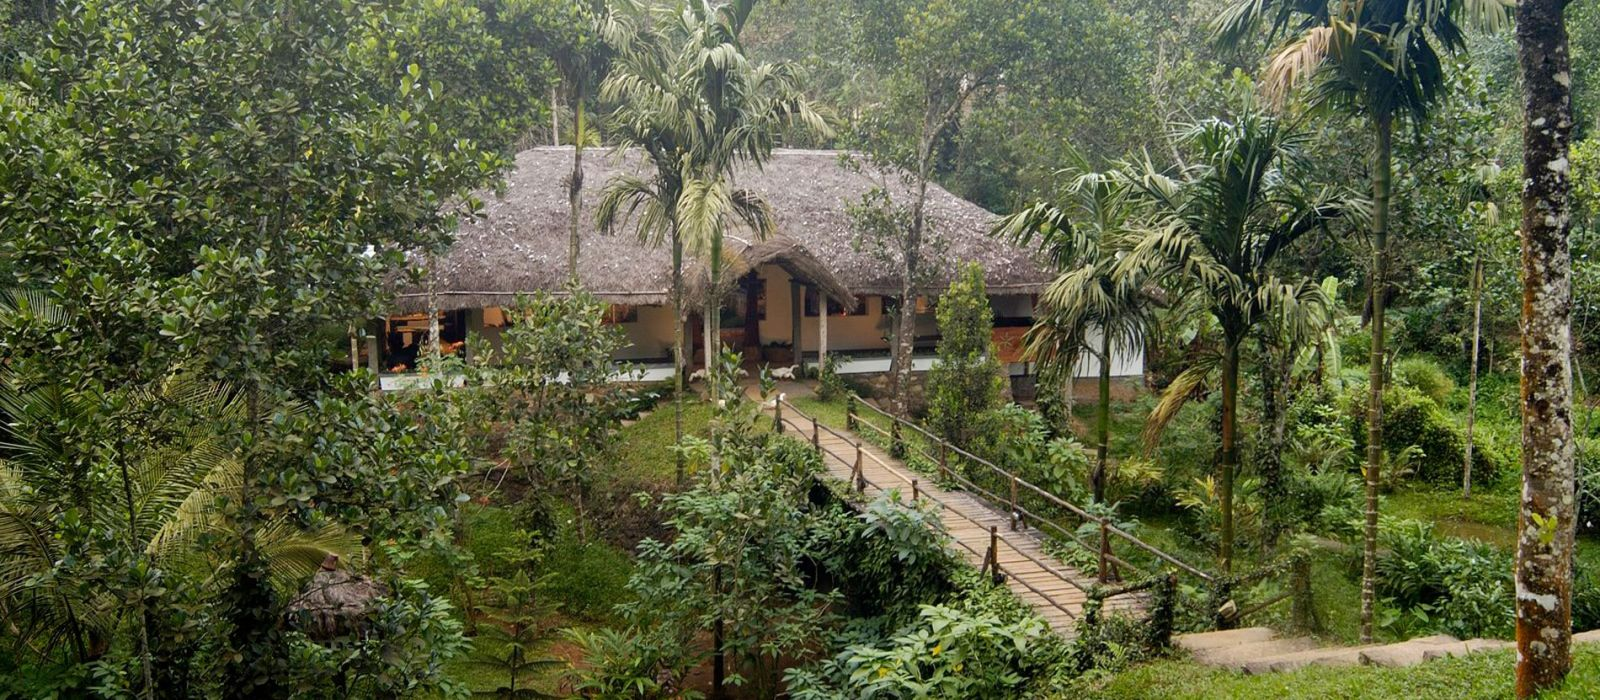 Hotel Shalimar Spice Garden South India